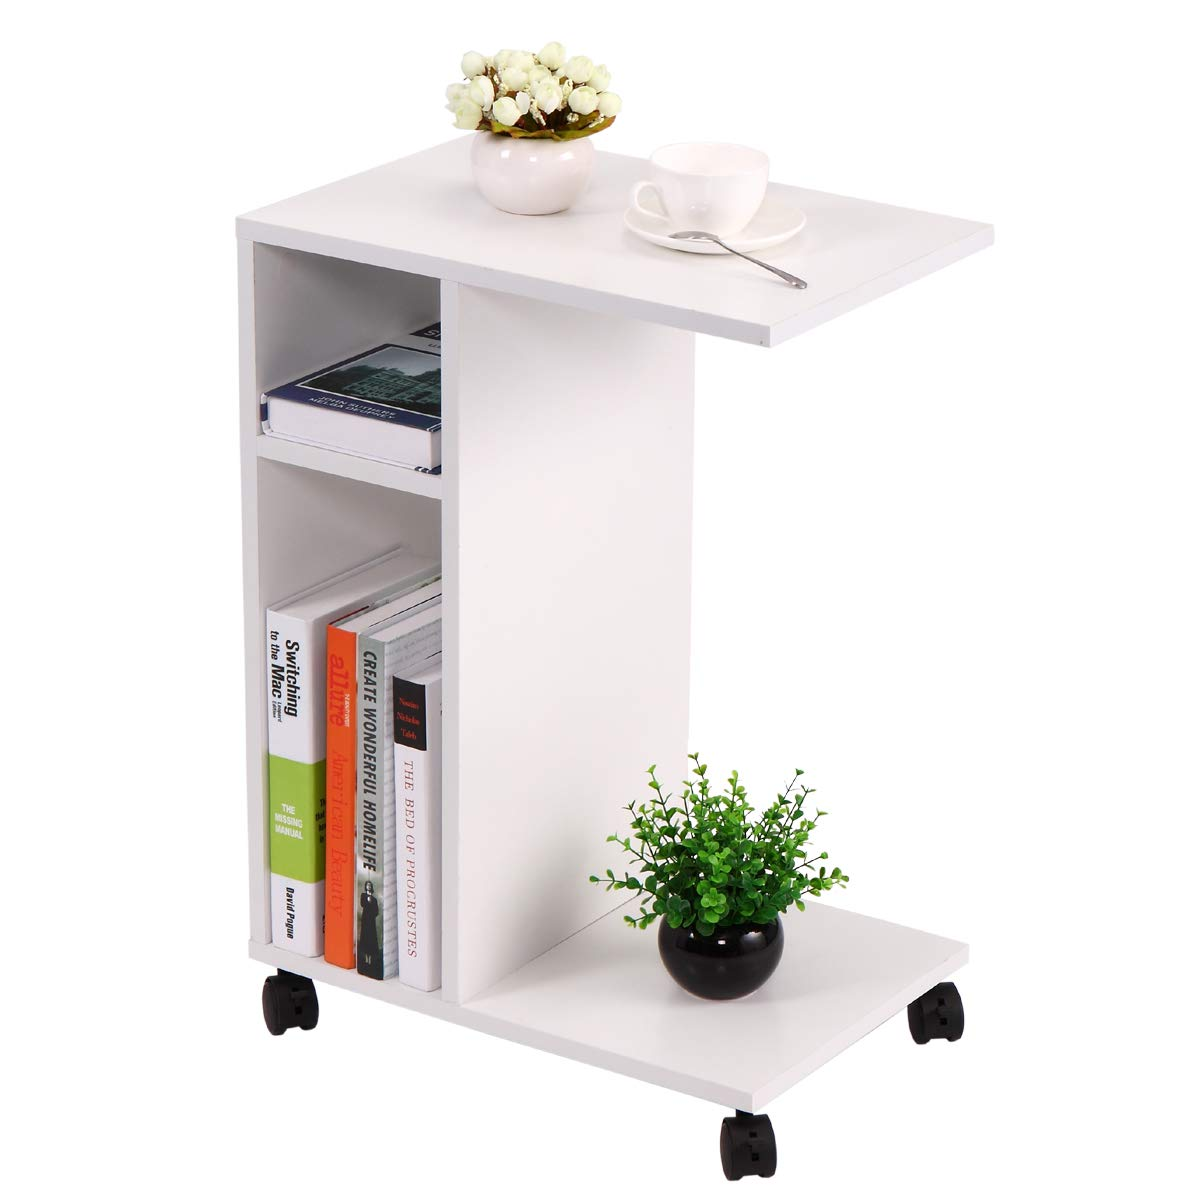 Winmart Wood Overbed Mobile Desk Laptop End Table Rolling Cart Multi Compartments with Lockable Wheels